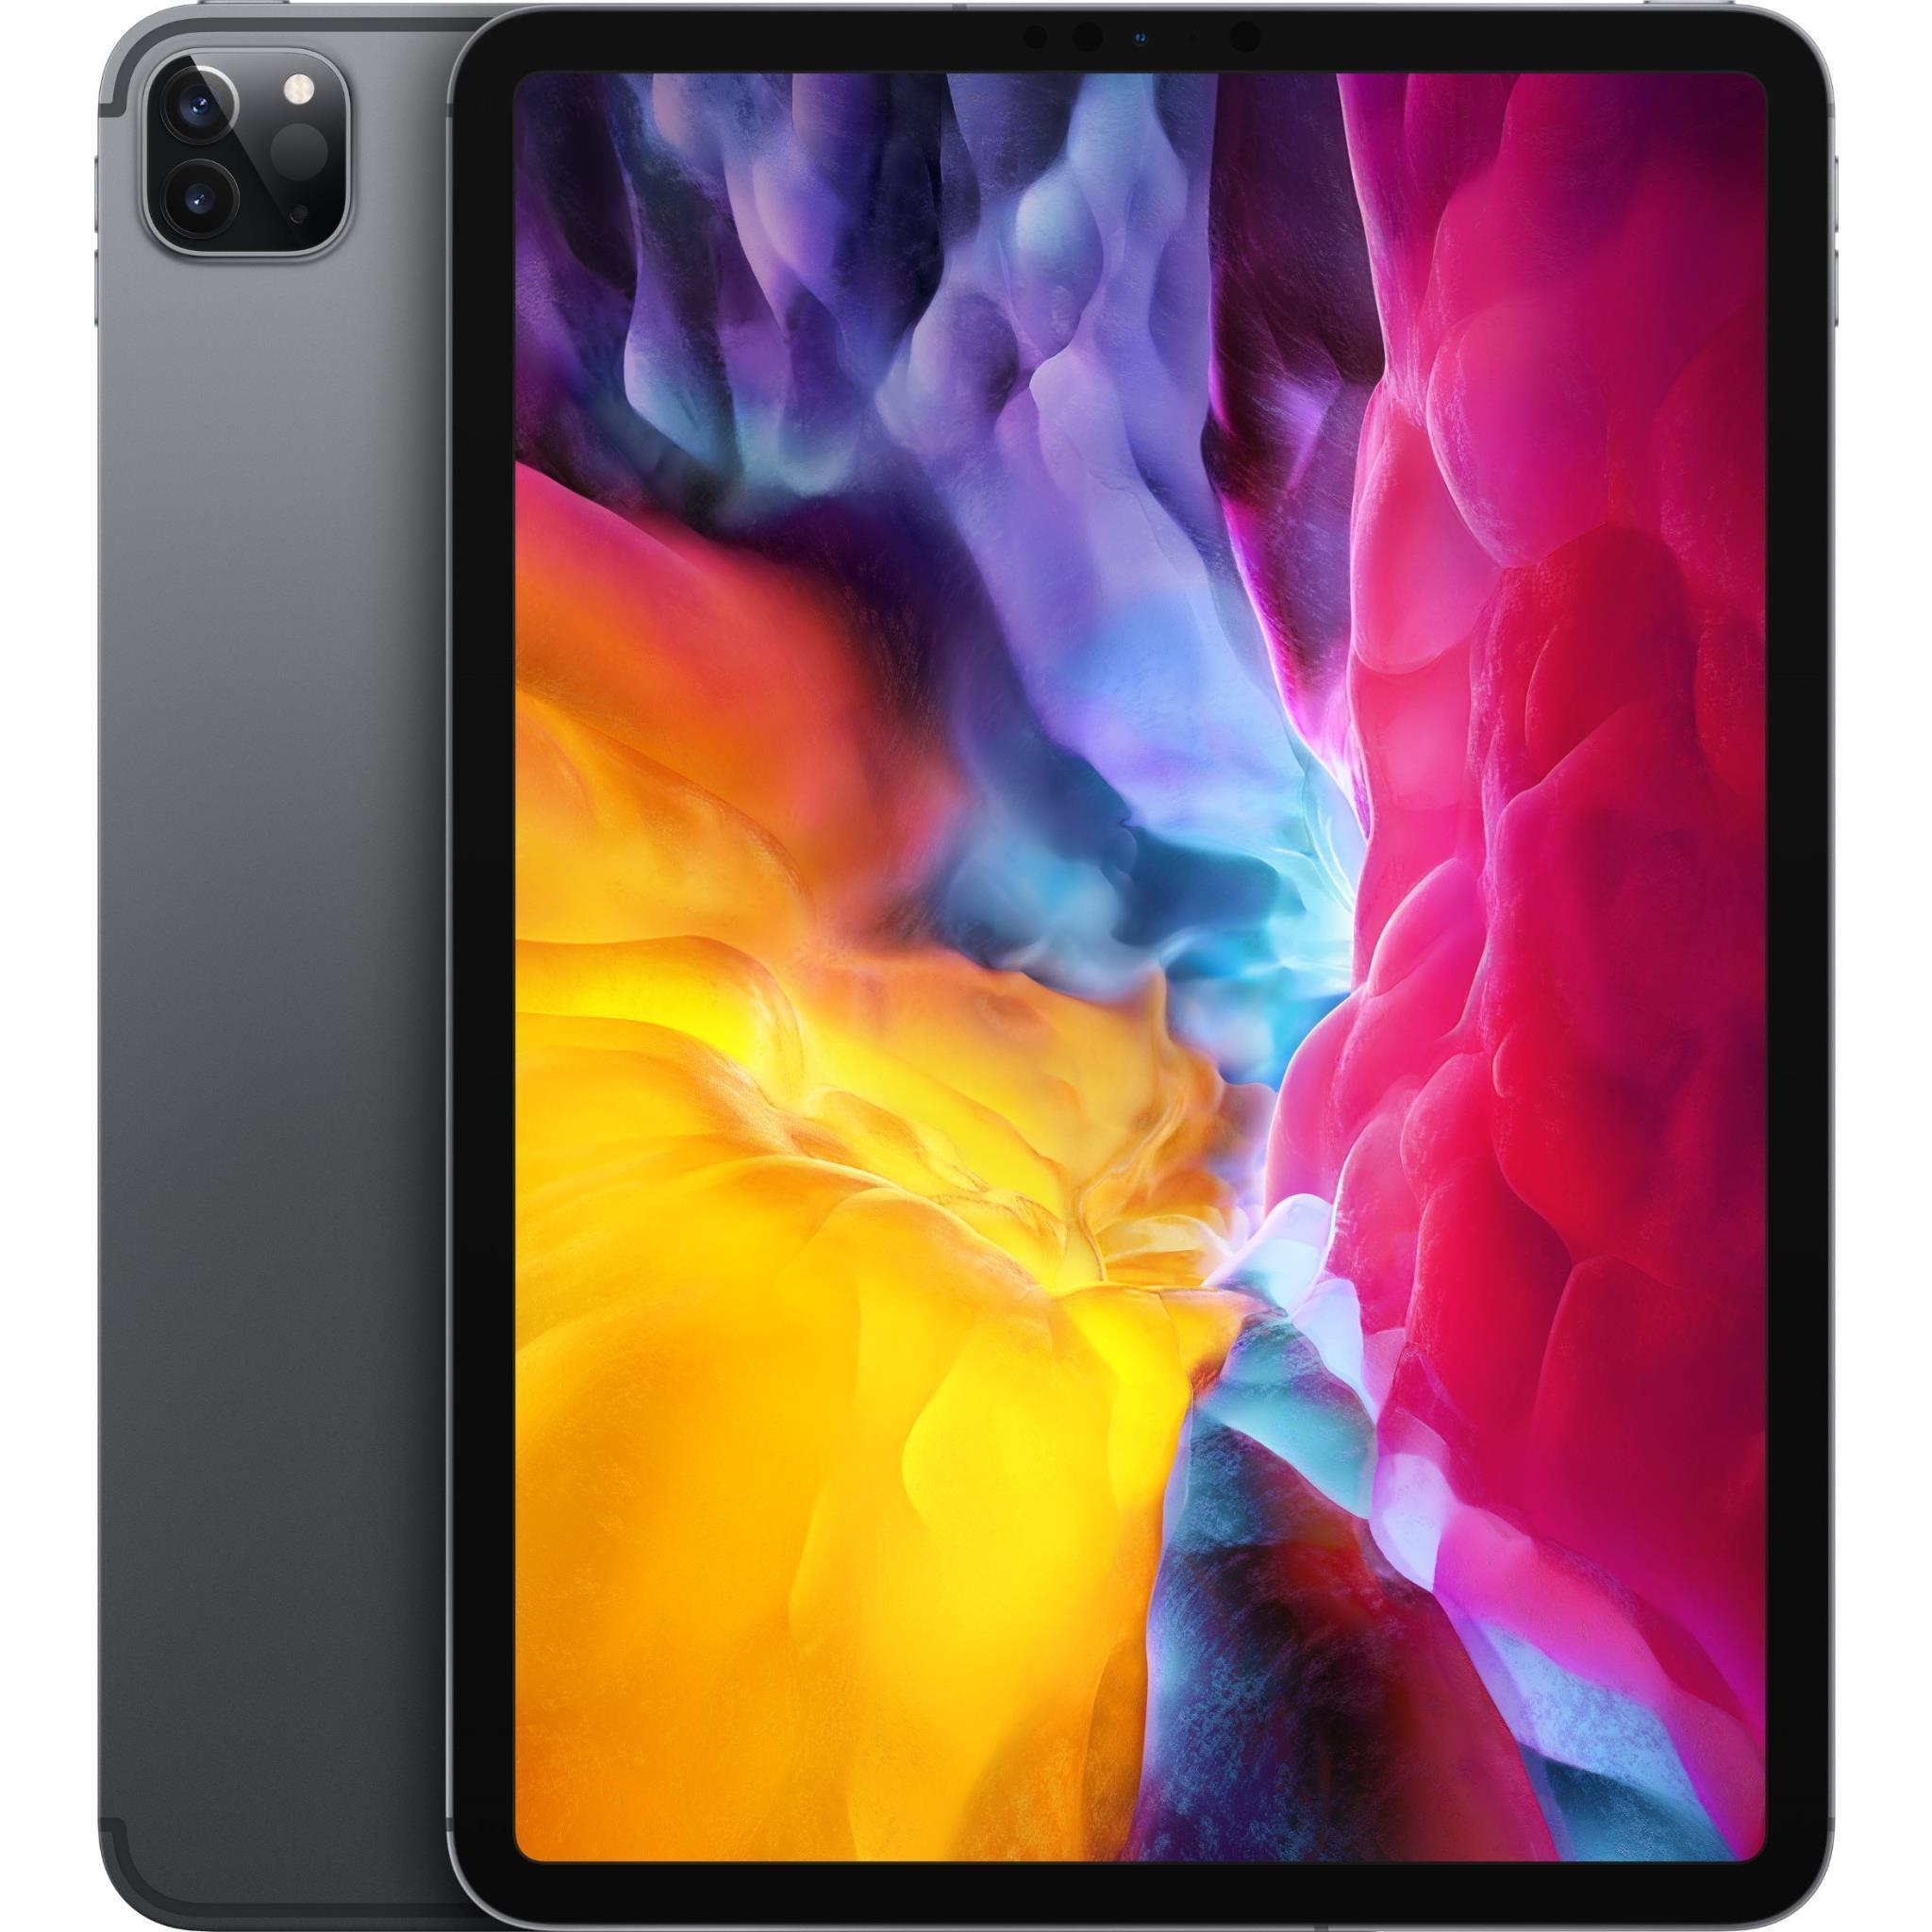 Apple iPad Pro 11-inch 512GB Wi-Fi + Cellular (Space Grey) [2020]